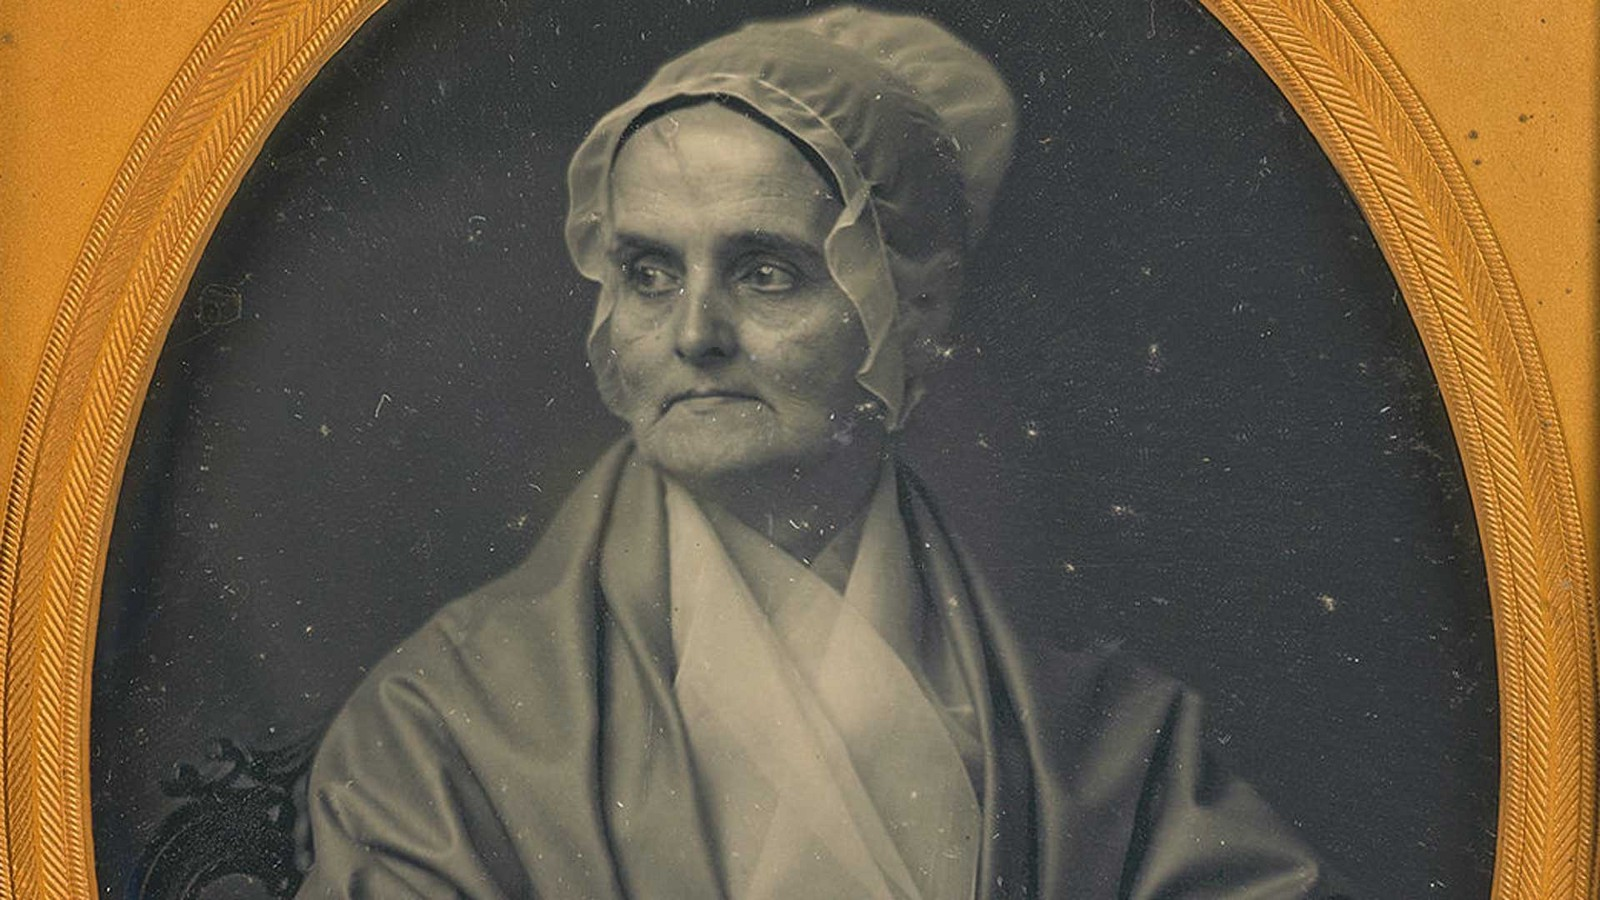 portrait of American abolitionist and women's rights activist Lucretia Mott